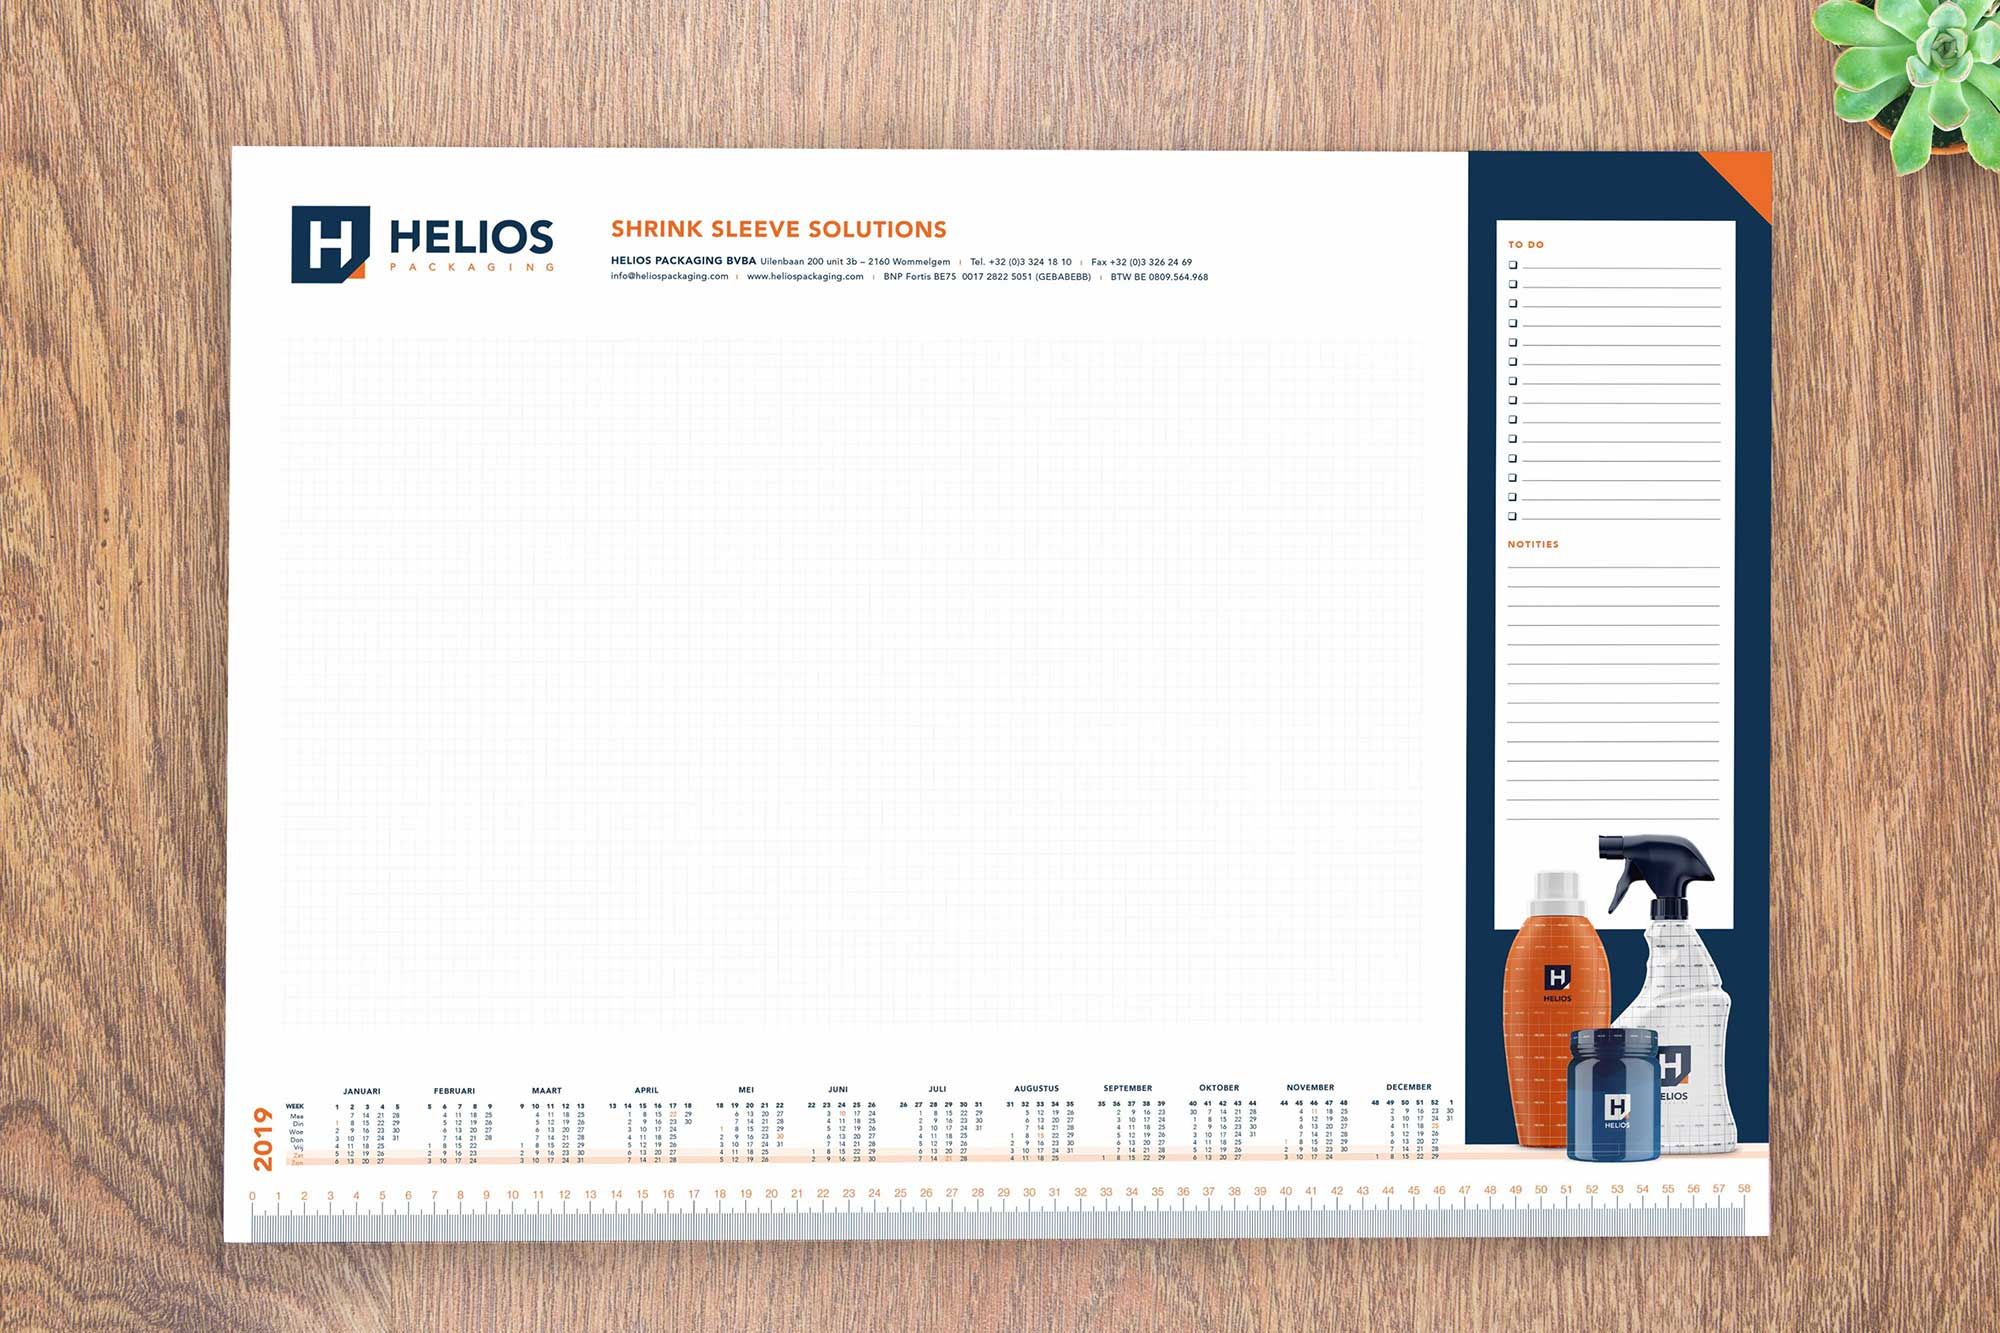 Helios Packaging